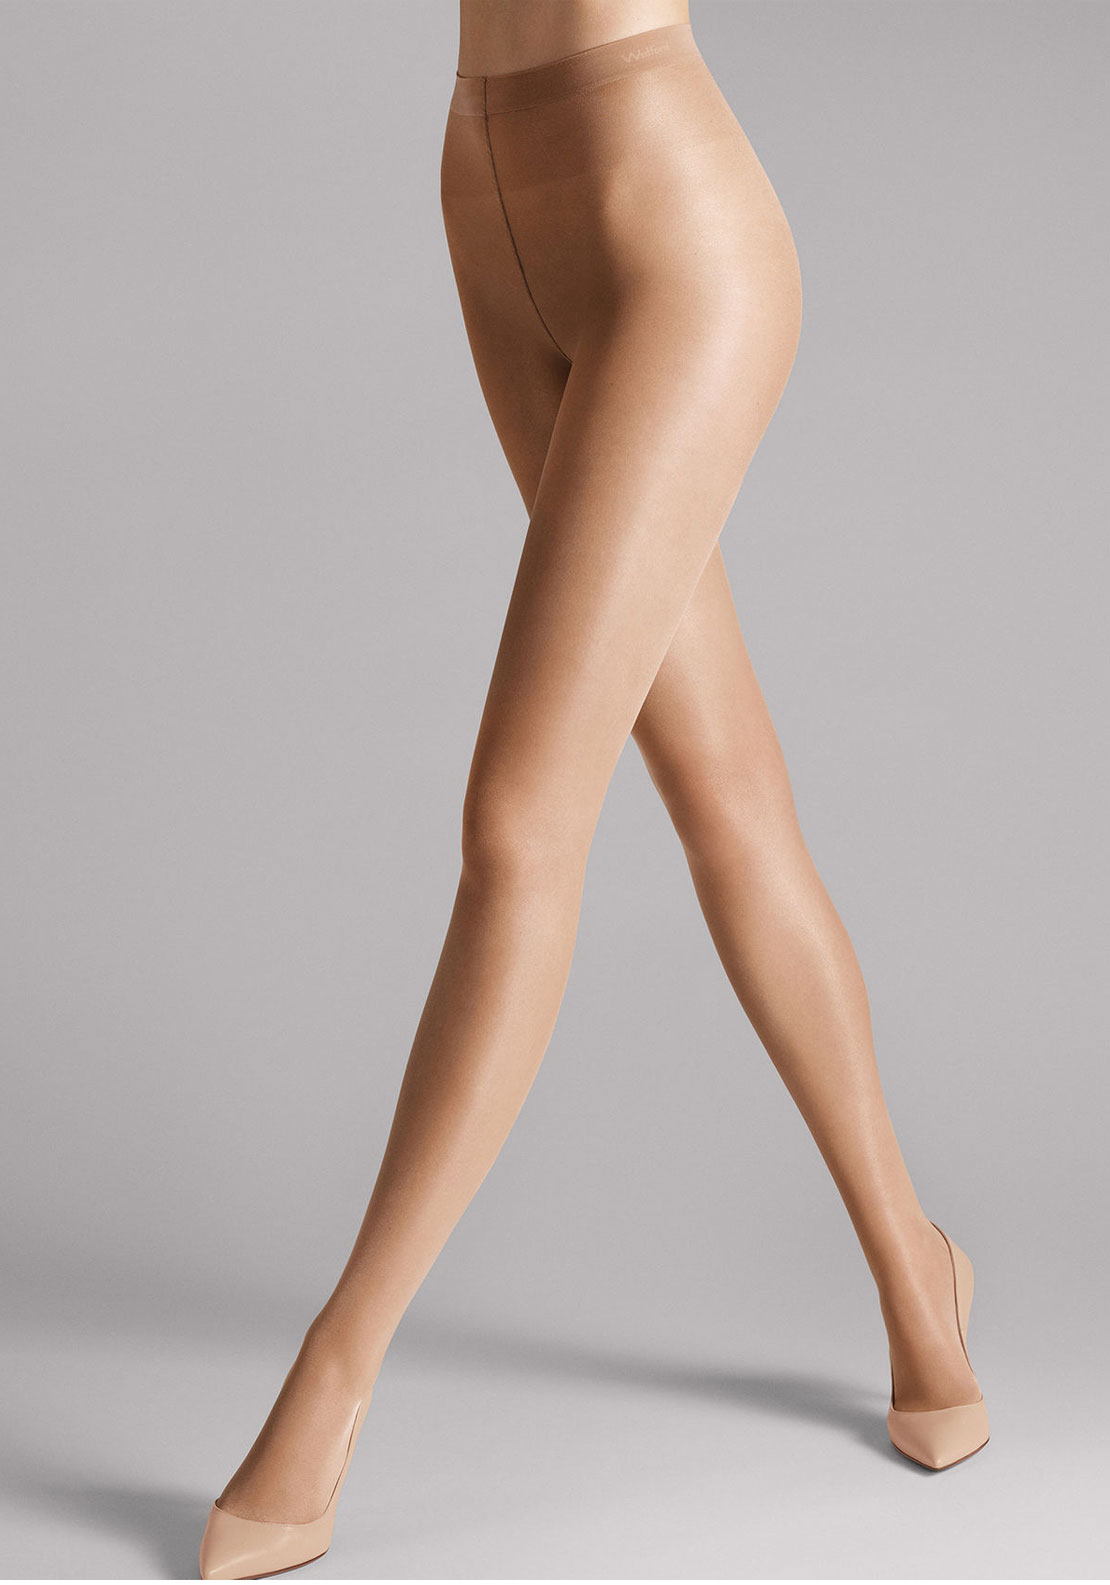 Wolford Satin Touch 20 Sheer Tights, Gobi